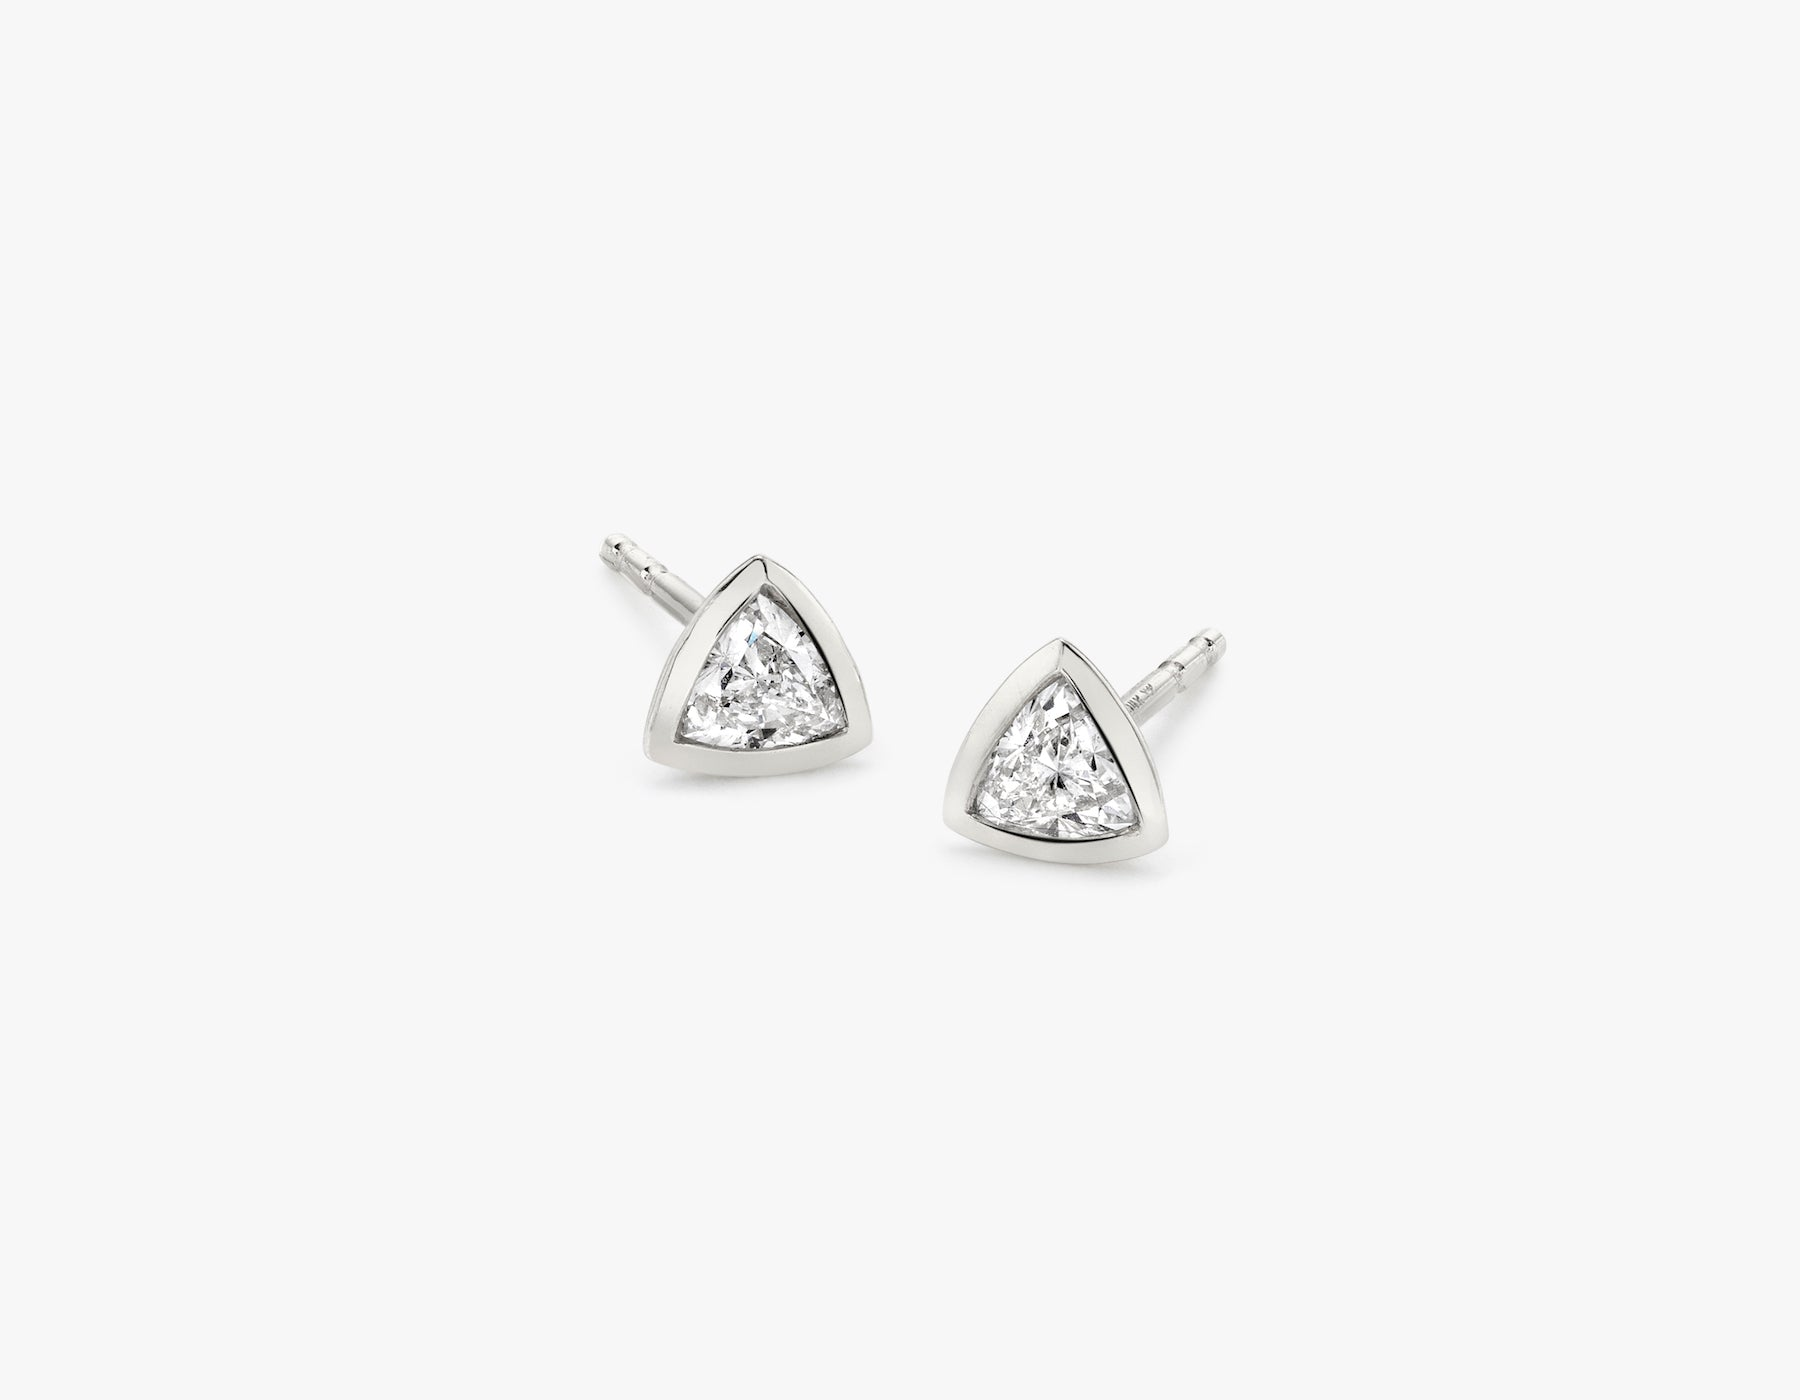 Vrai simple minimalist Trillion Diamond Bezel Earrings, 14K White Gold